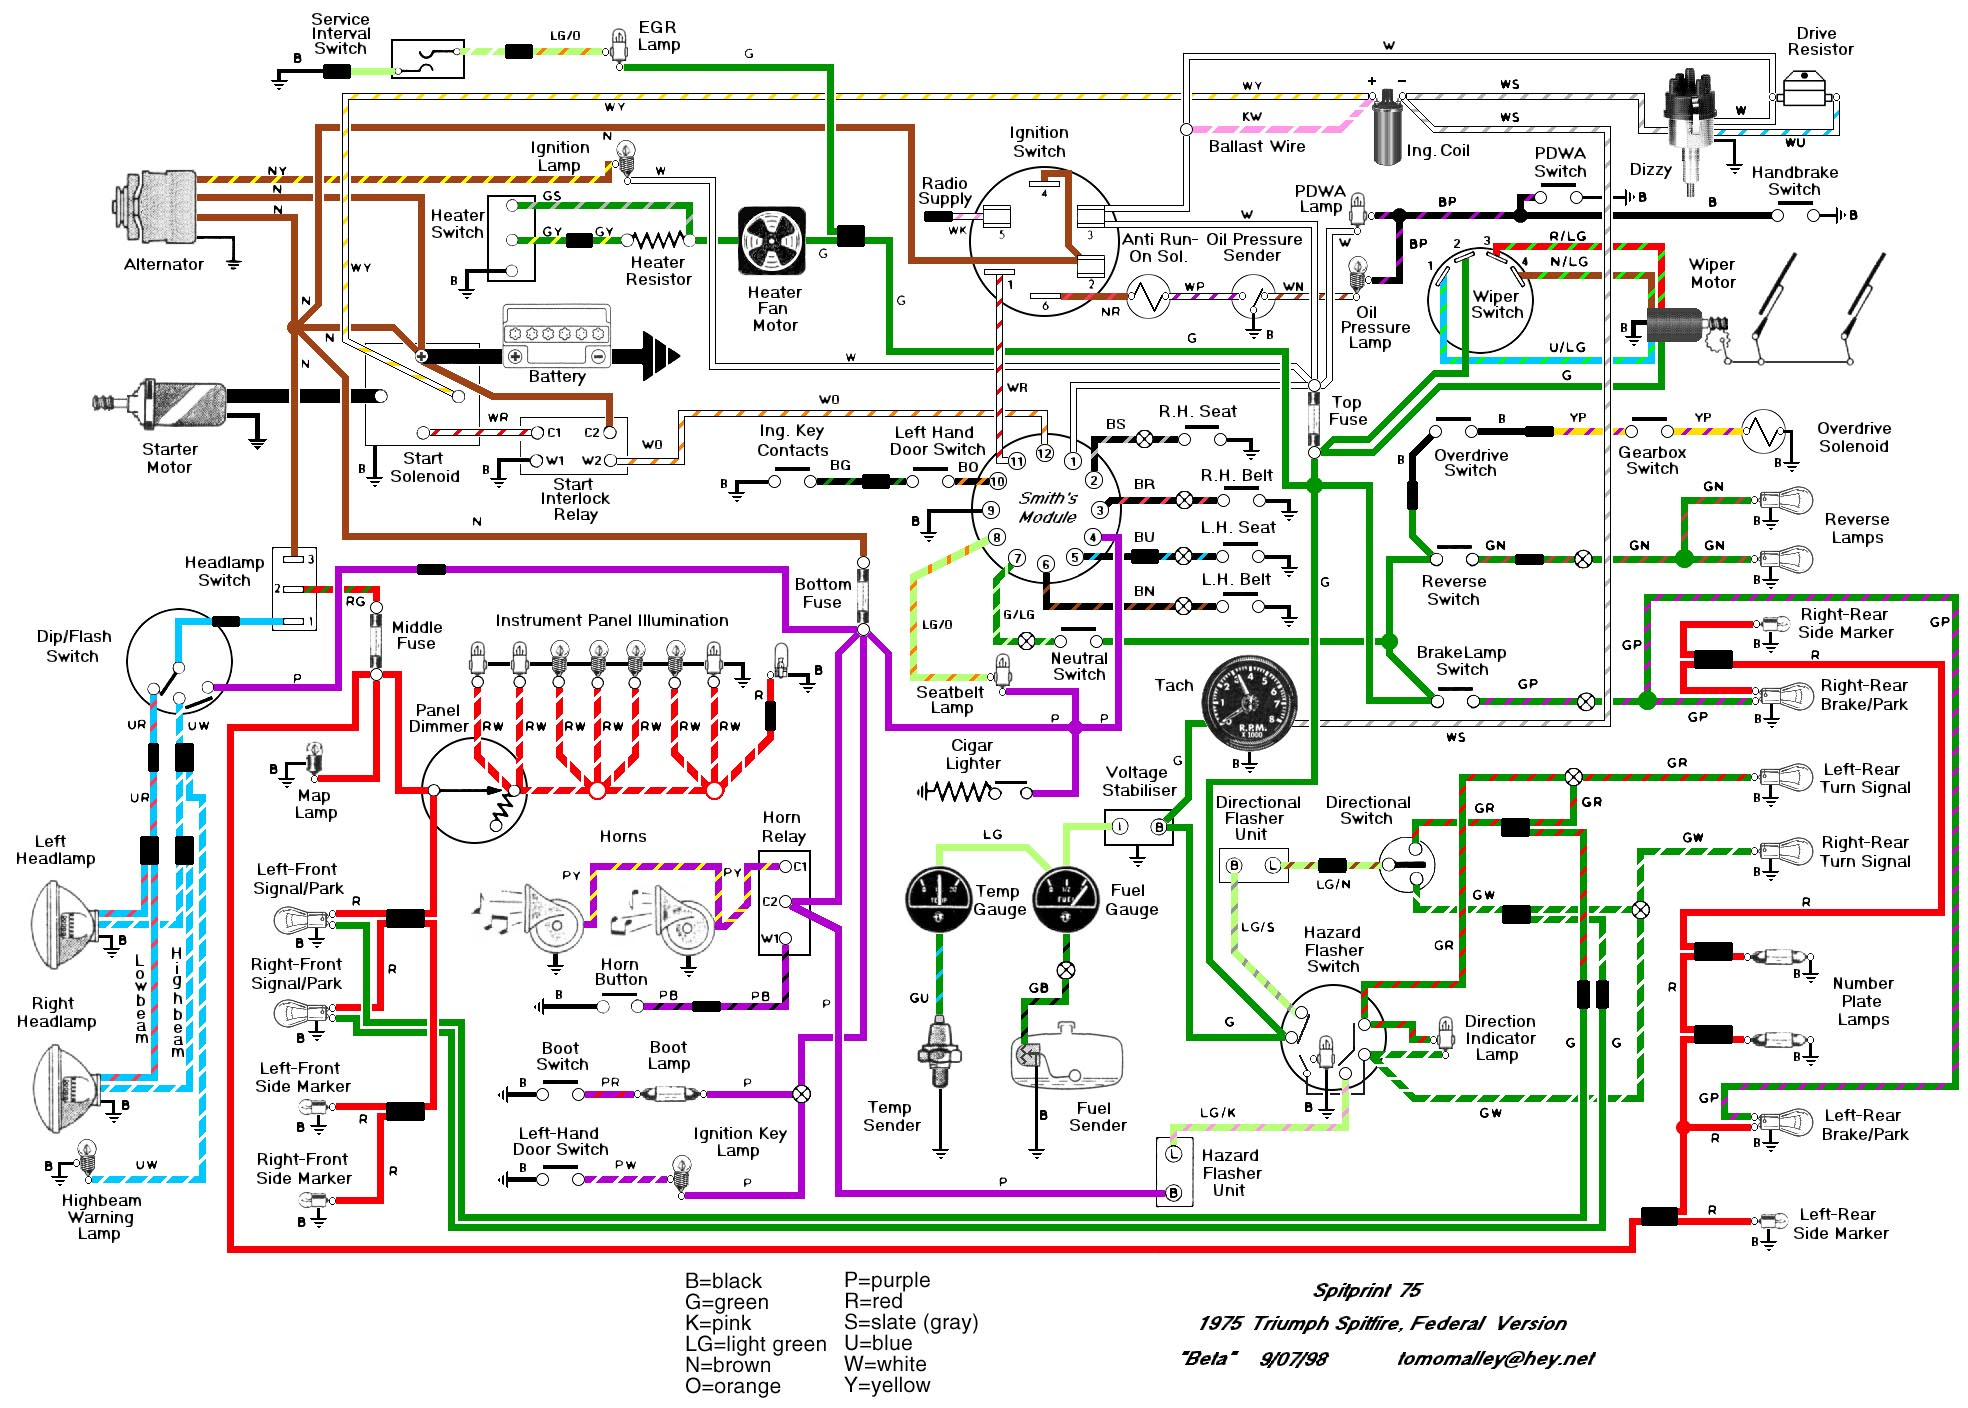 car wiring diagram 6 erg feba arbeitsvermittlung de \u2022car wiring diagrams wiring diagram library rh 14 bmh stenimex de car wiring diagram software car wiring diagram free